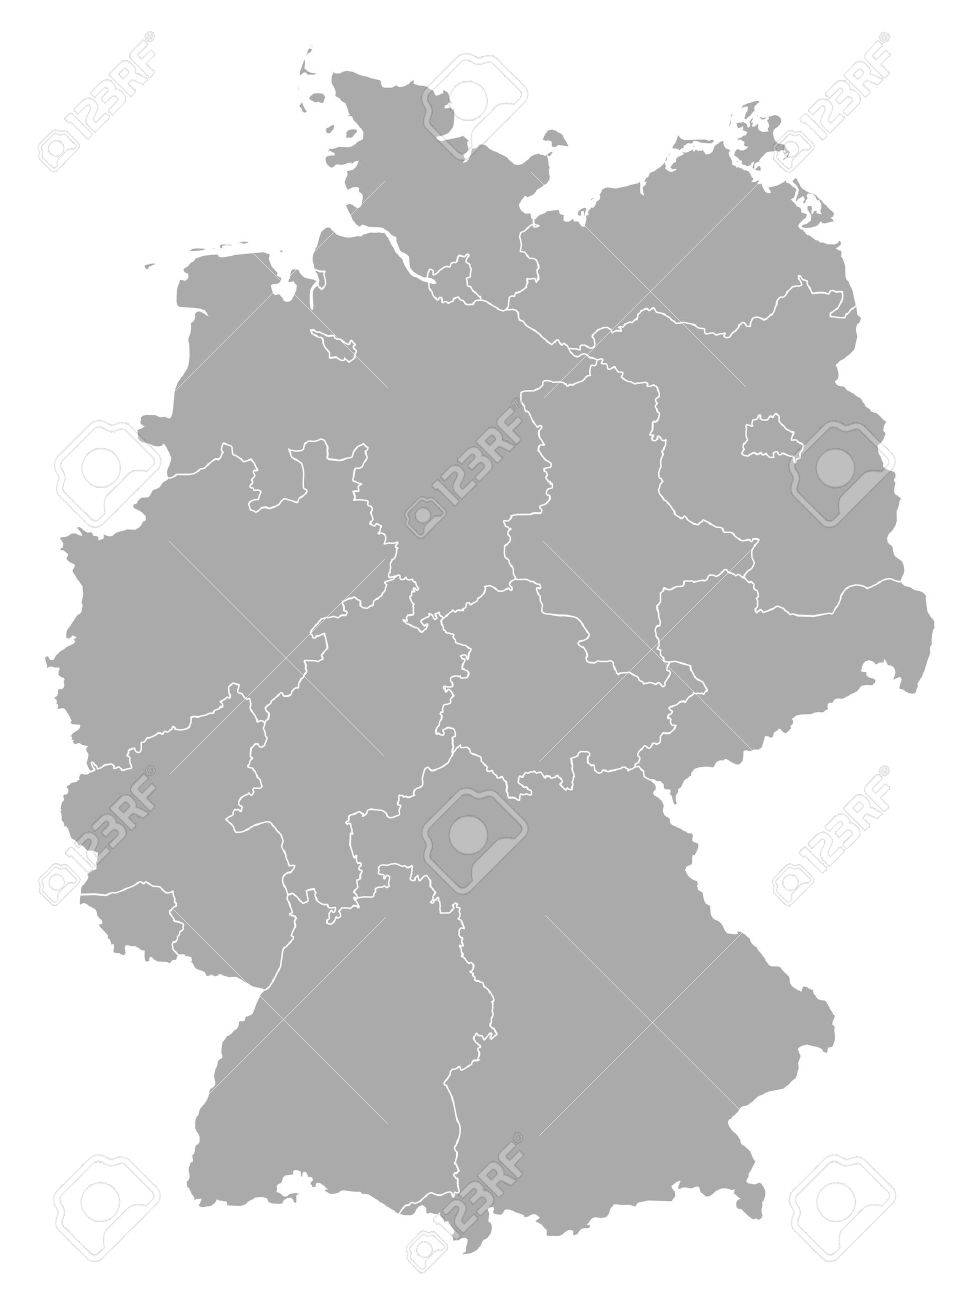 Political map of Germany with the several states. - 11241438